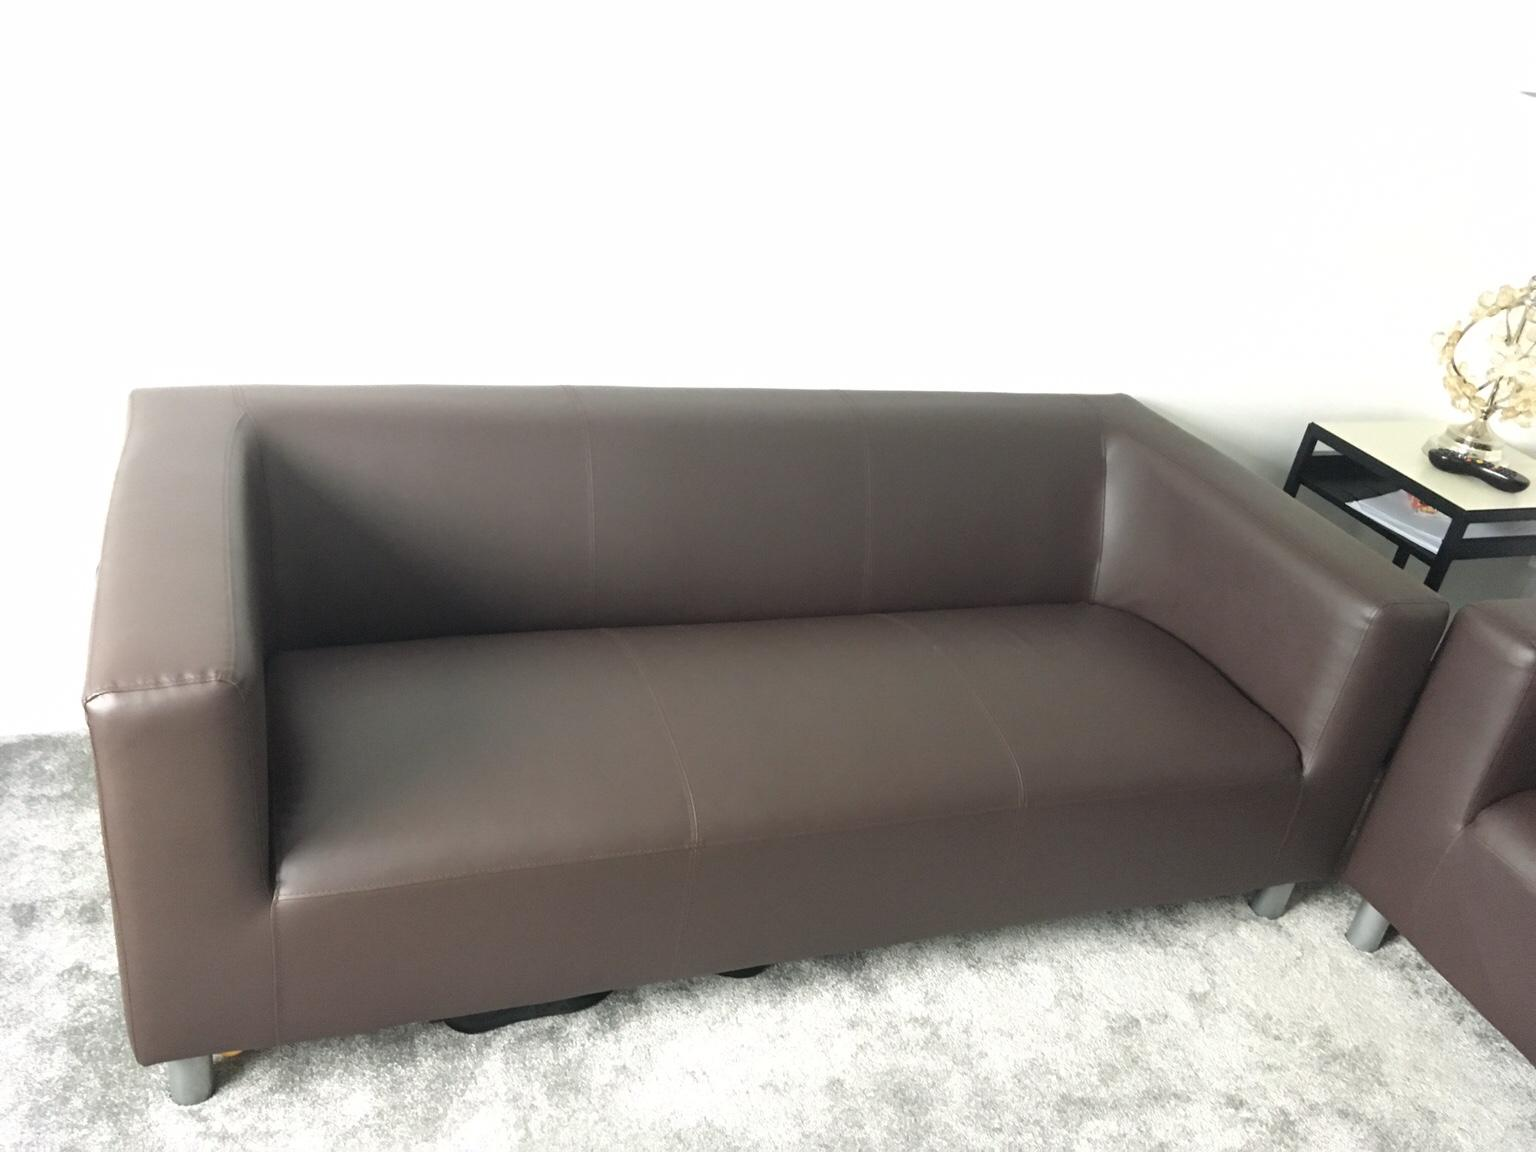 Picture of: Argos Home Moda 3 And 2 Seater Sofa In Eh16 Craigmillar For 260 00 For Sale Shpock